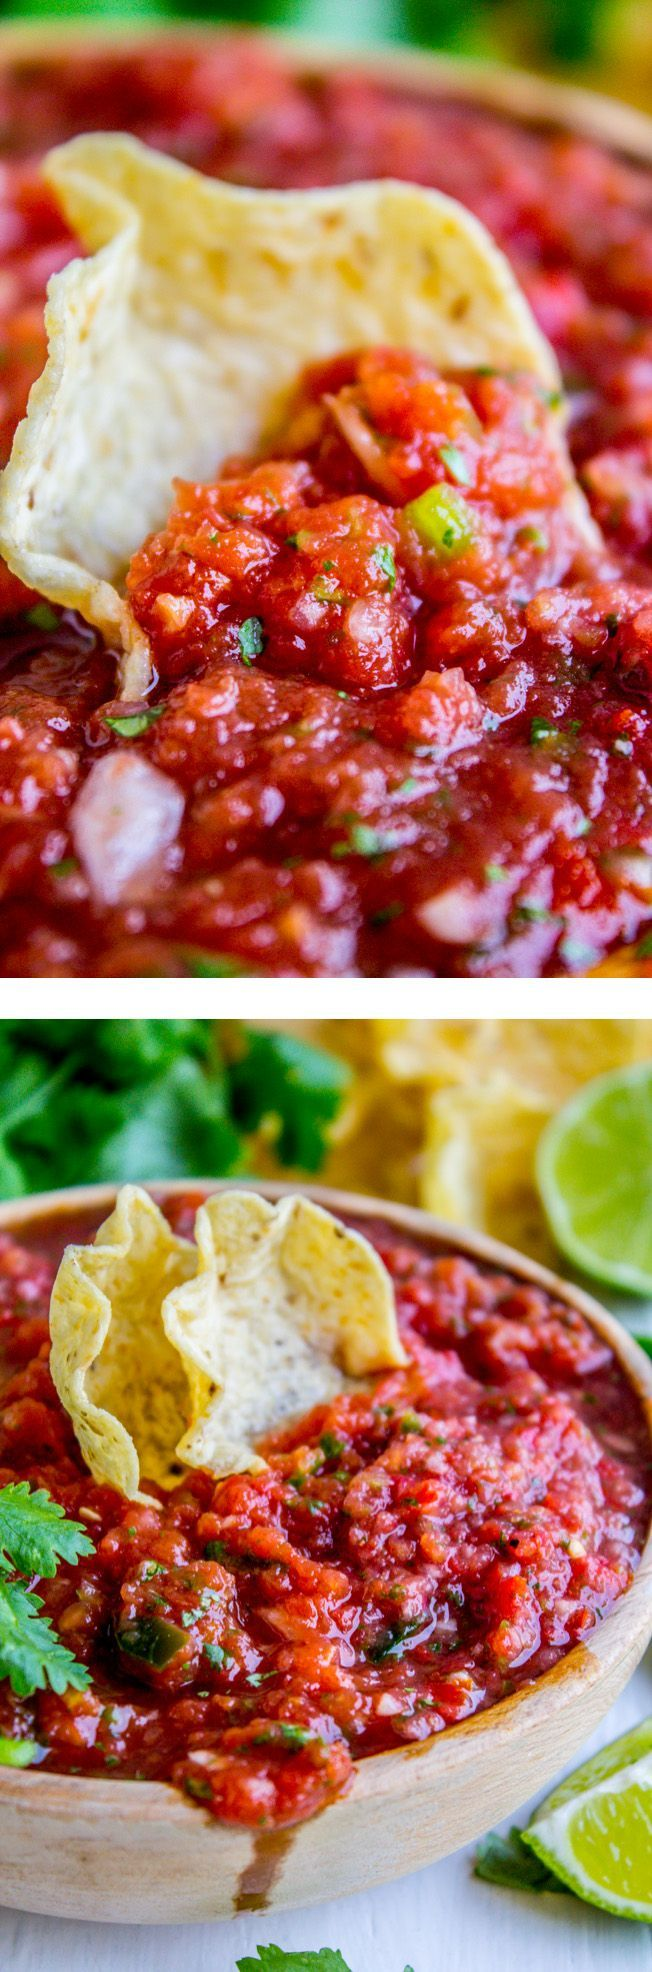 5 Minute Restaurant Style Salsa and How to Host Taco Tuesday from The Food Charlatan. Why do we buy canned salsa? Whyyy?? It takes 5 minutes to throw together this recipe, and it really does taste like it's from a restaurant. Also, scroll down to read how our family has been hosting Taco Tuesdays all summer, and how you can too! It's such a fun way to entertain in the summer, and so easy!